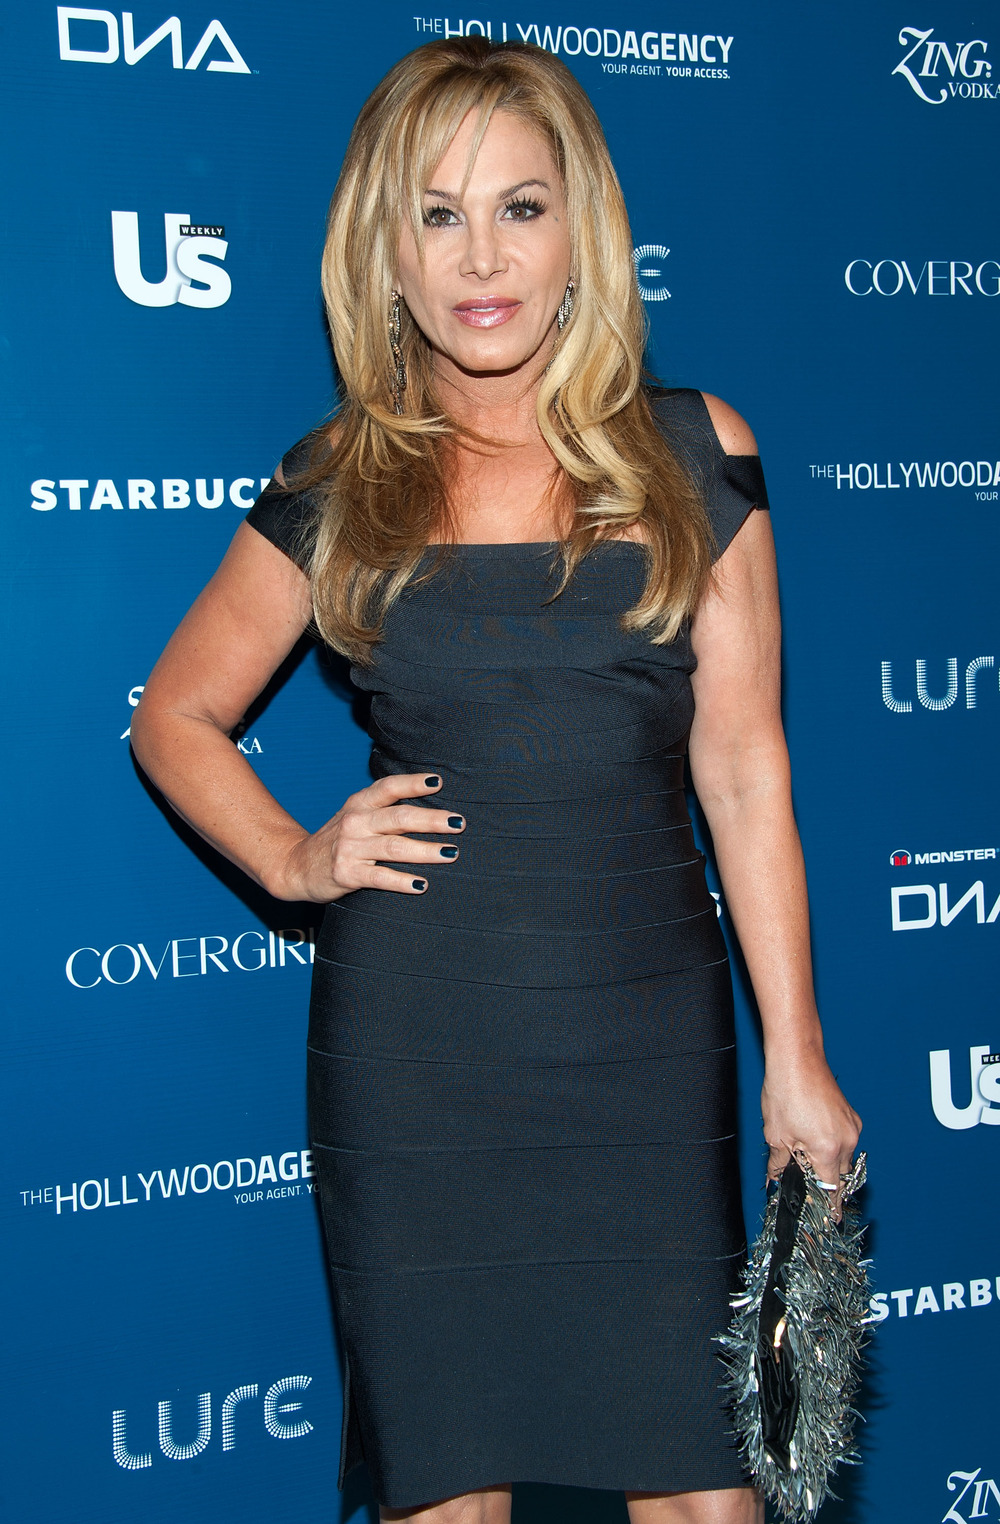 Adrienne Maloof Injured During Interview — Is She Okay?